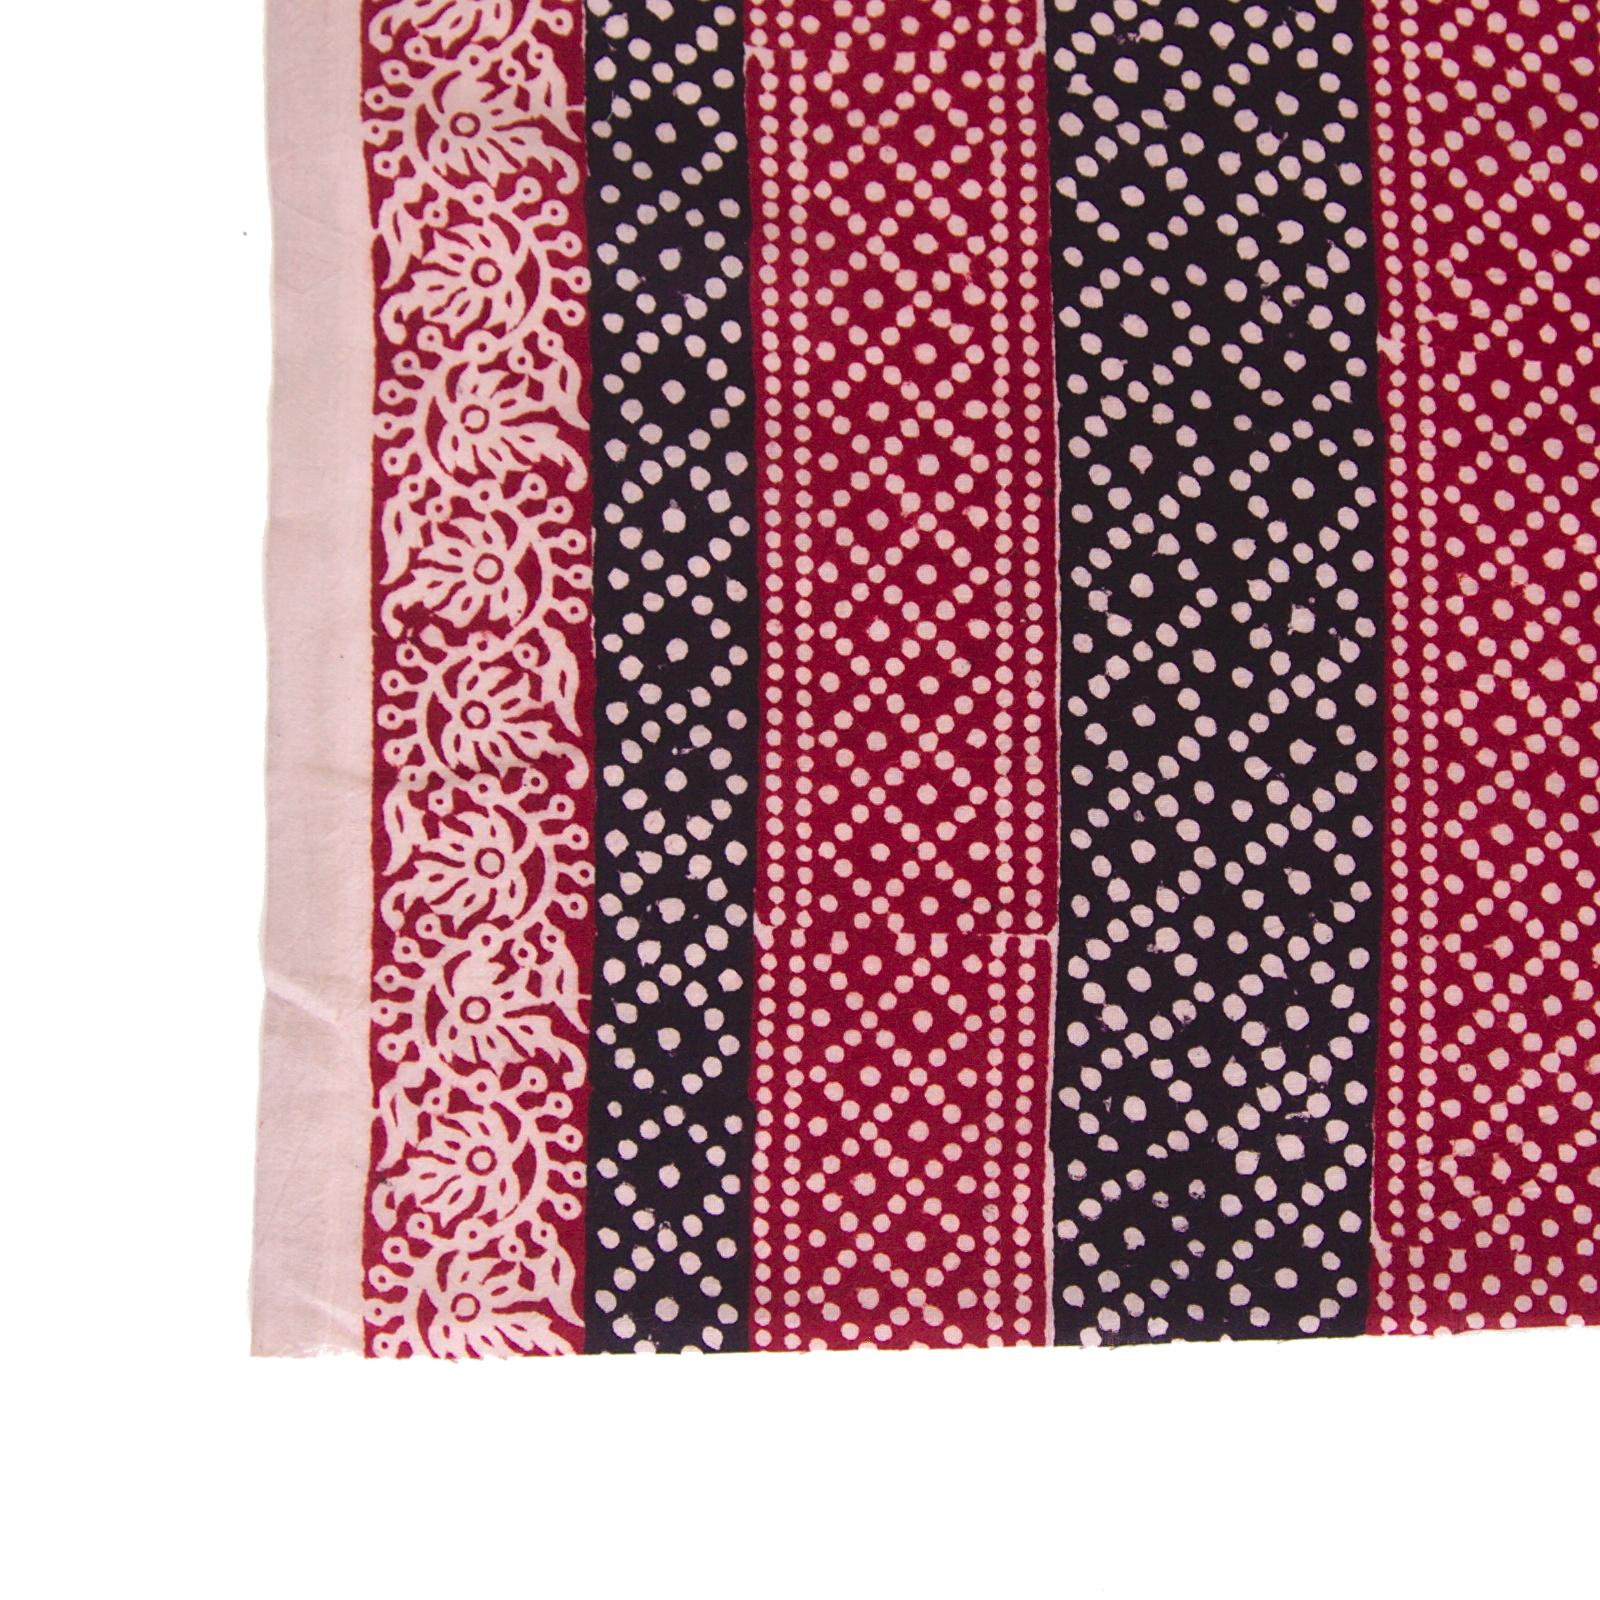 100% Block-Printed Cotton Fabric From India - Pixels Design - Iron Rust Black & Alizarin Red Dyes - Border - Live